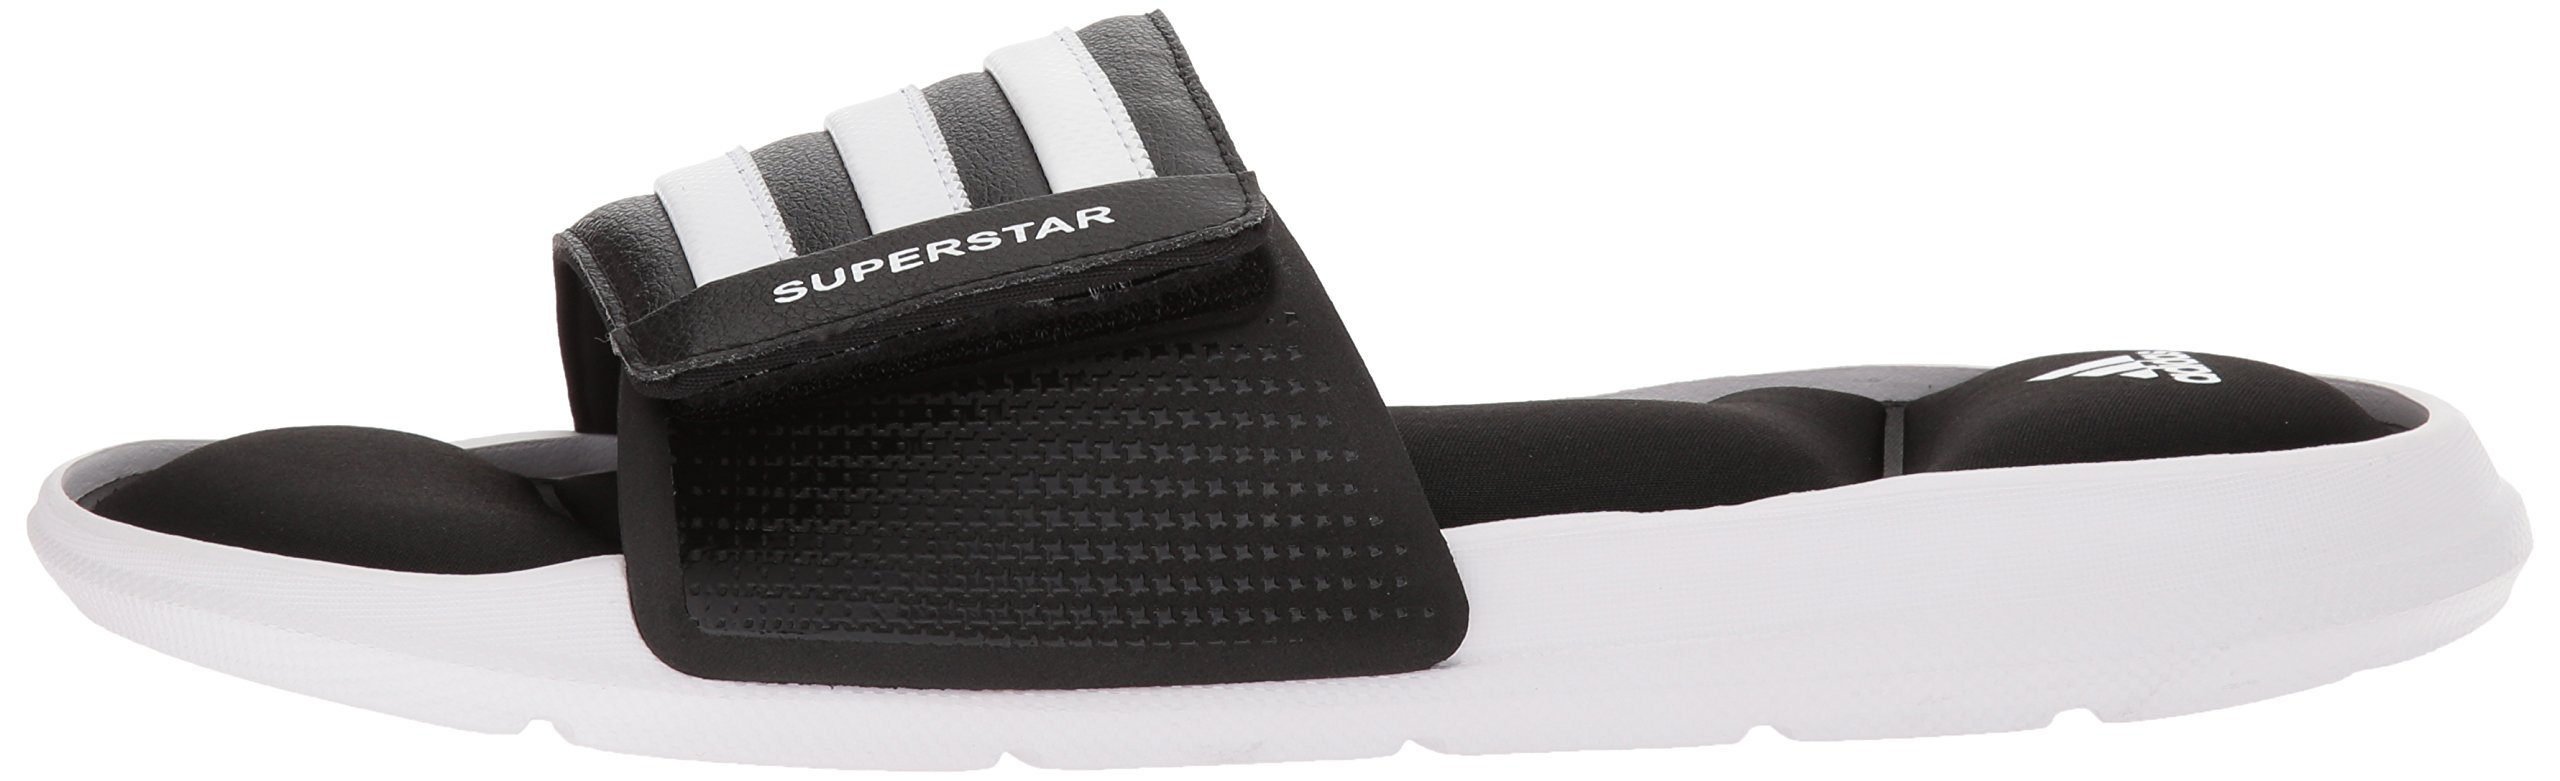 d6e0e904ecd7 adidas Men s Superstar Slide Sandal